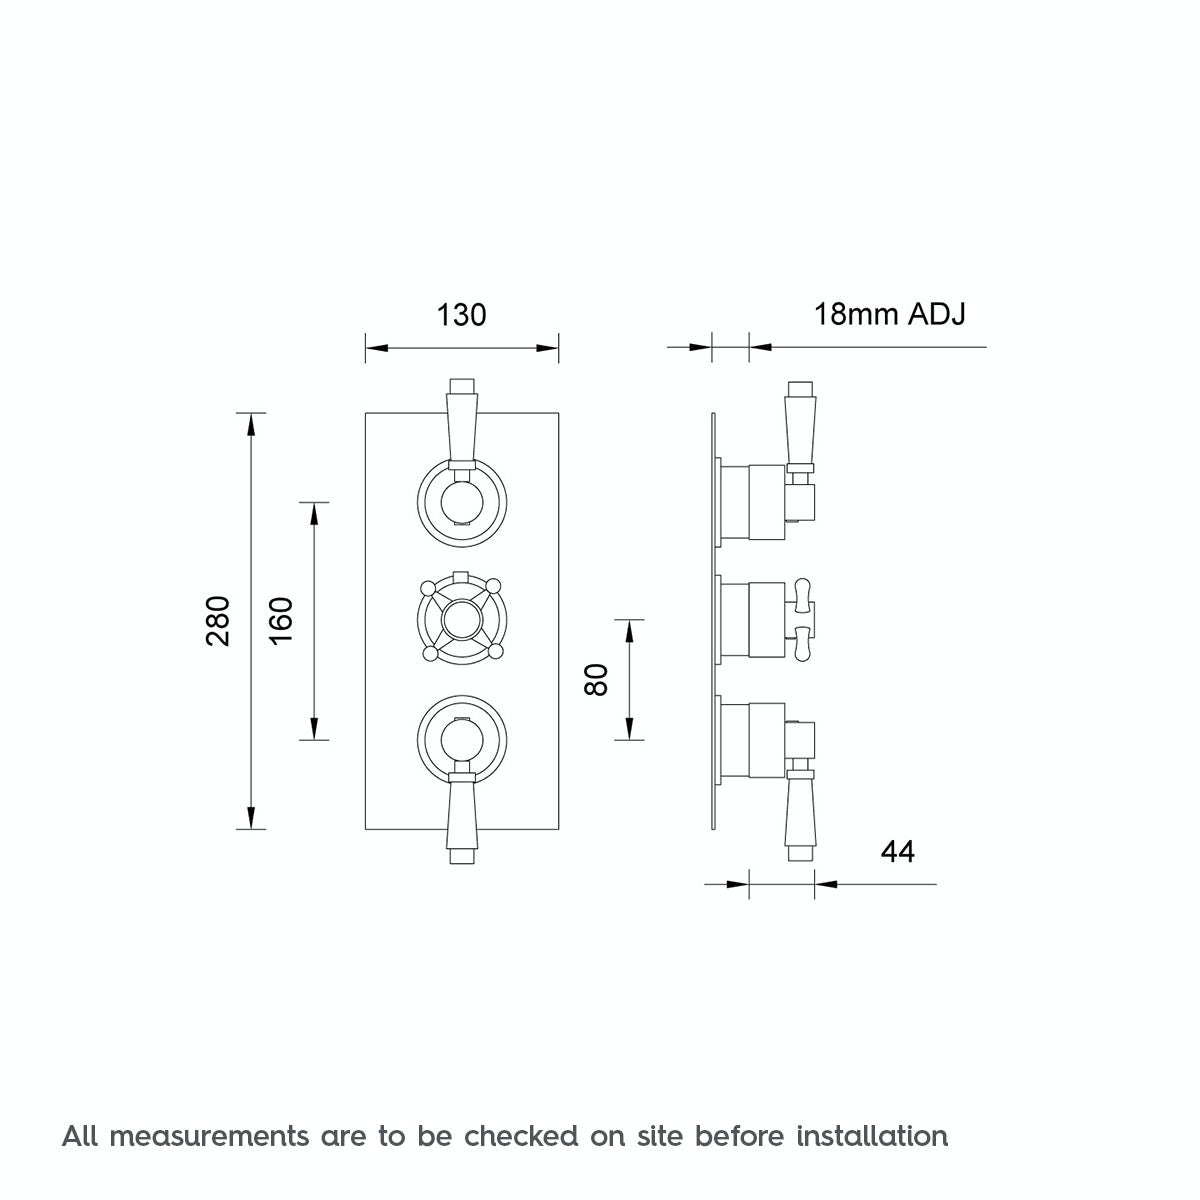 Dimensions for The Bath Co. Traditional square triple thermostatic shower valve